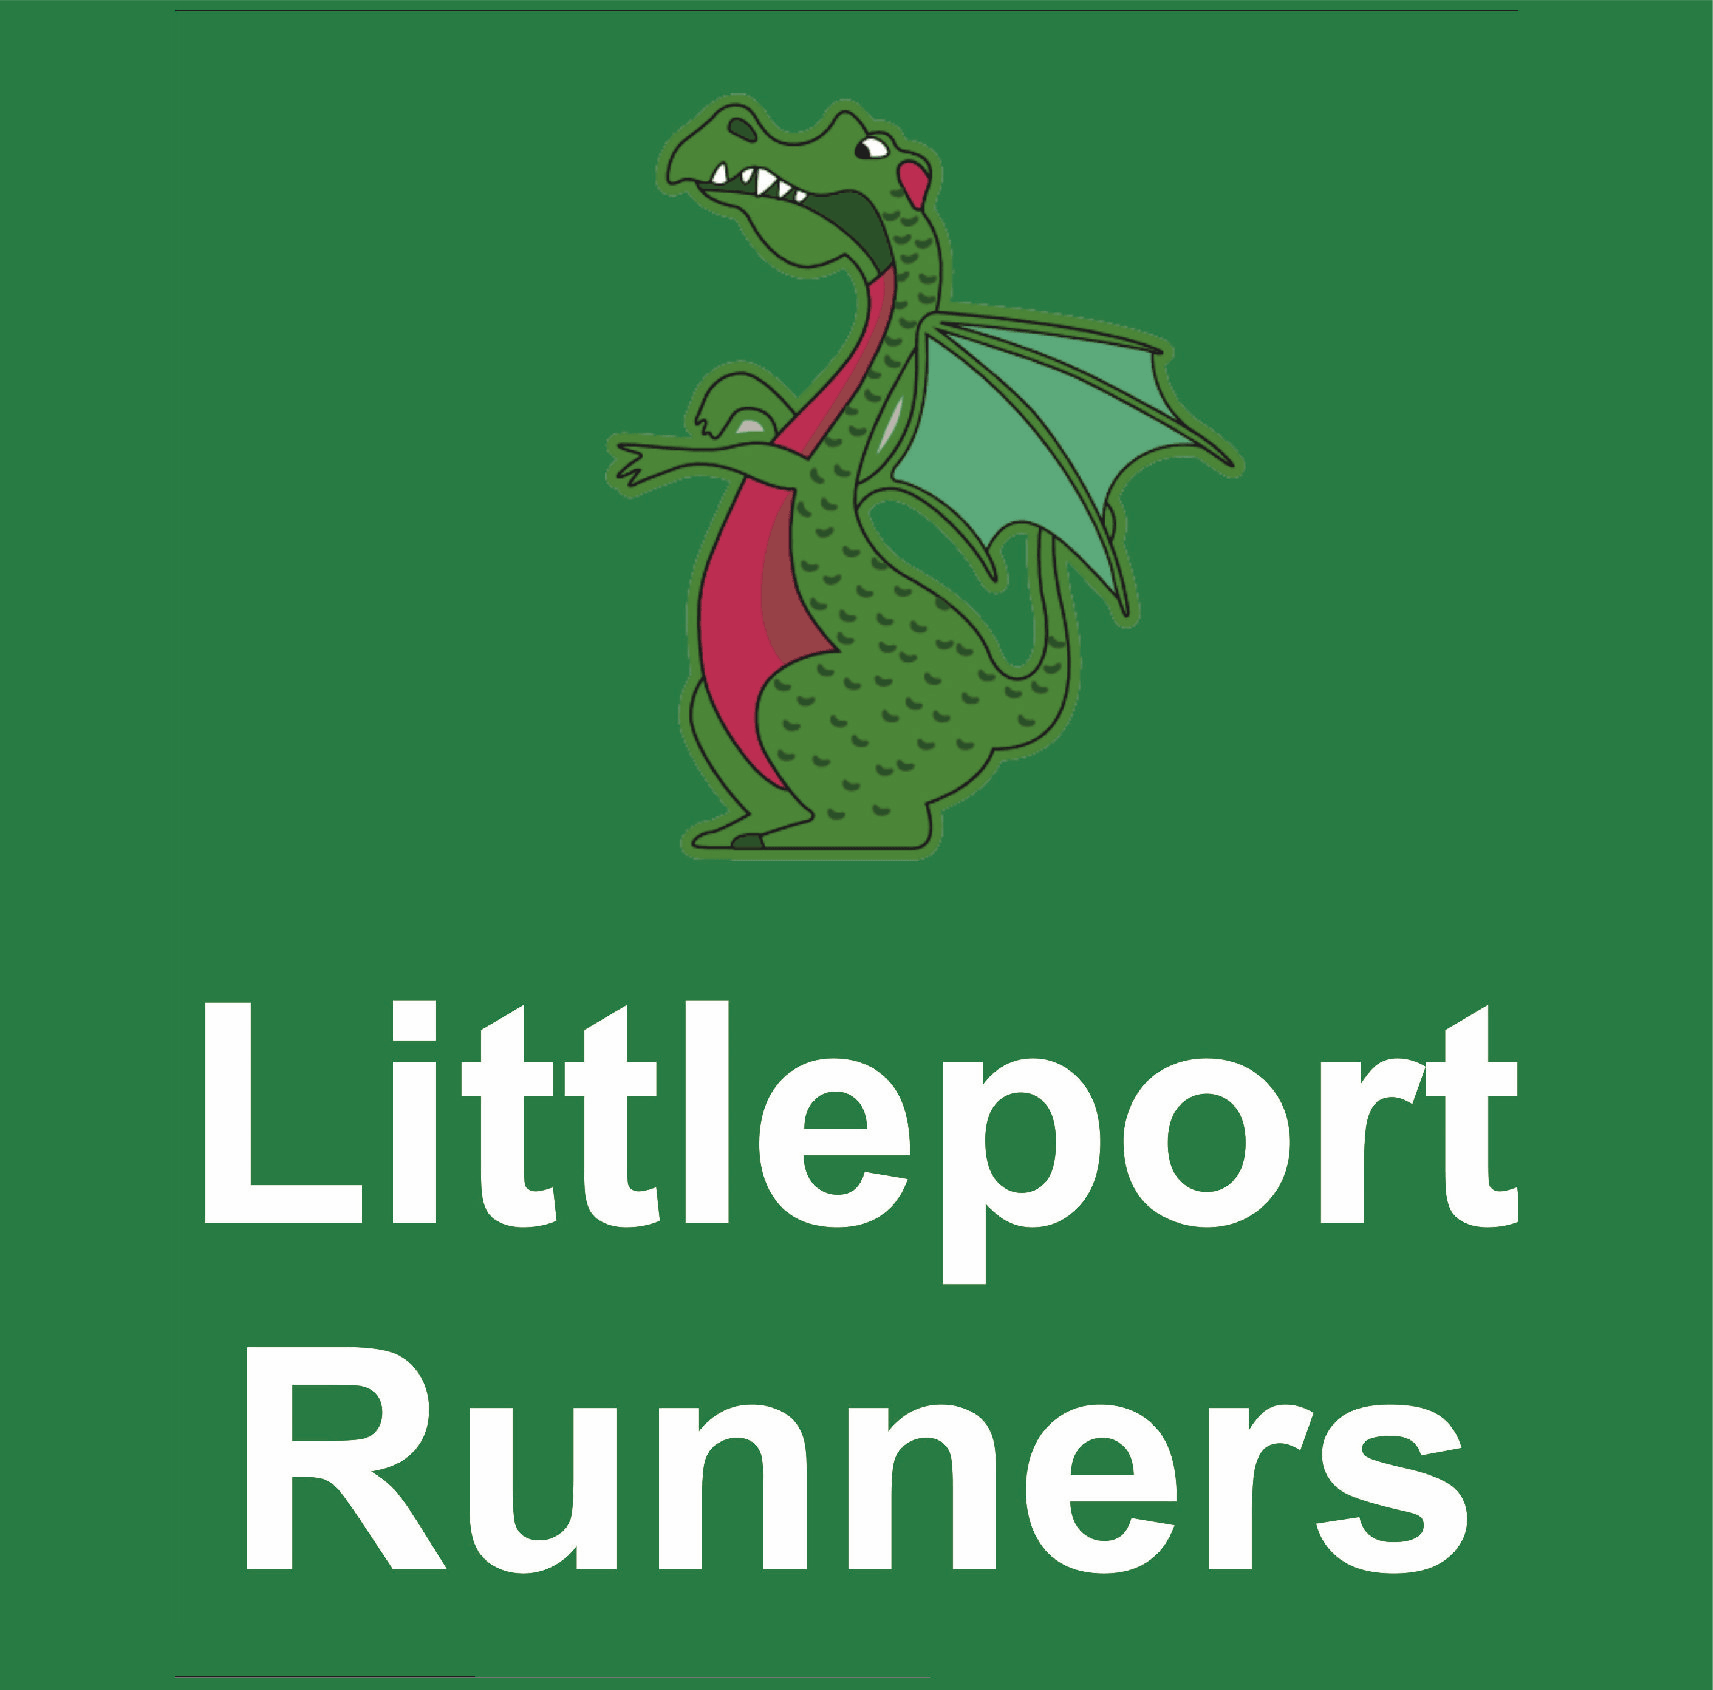 Littleport runners logo sigma embroidery